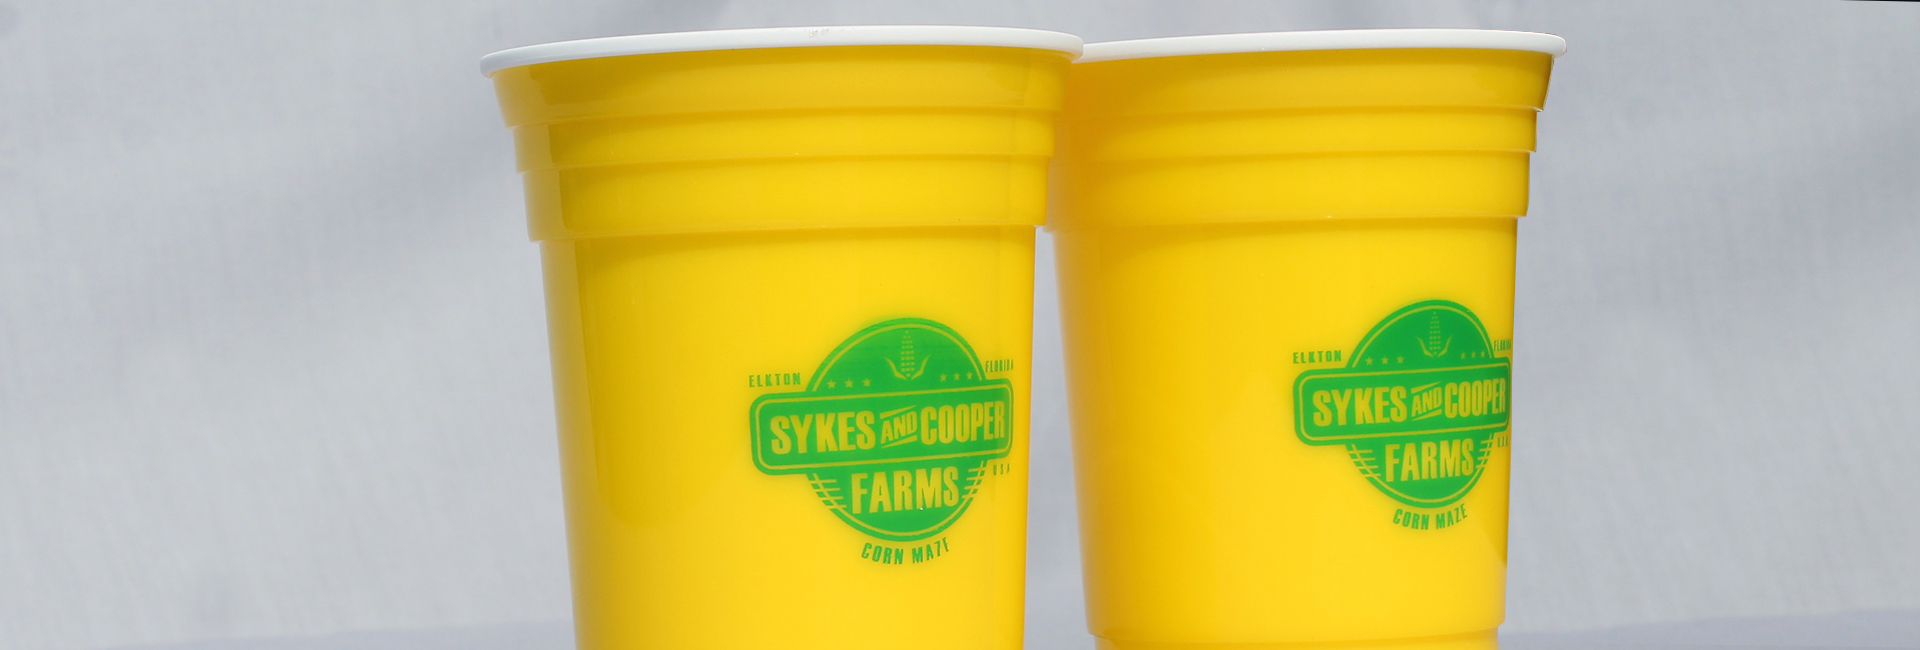 sykes-cups